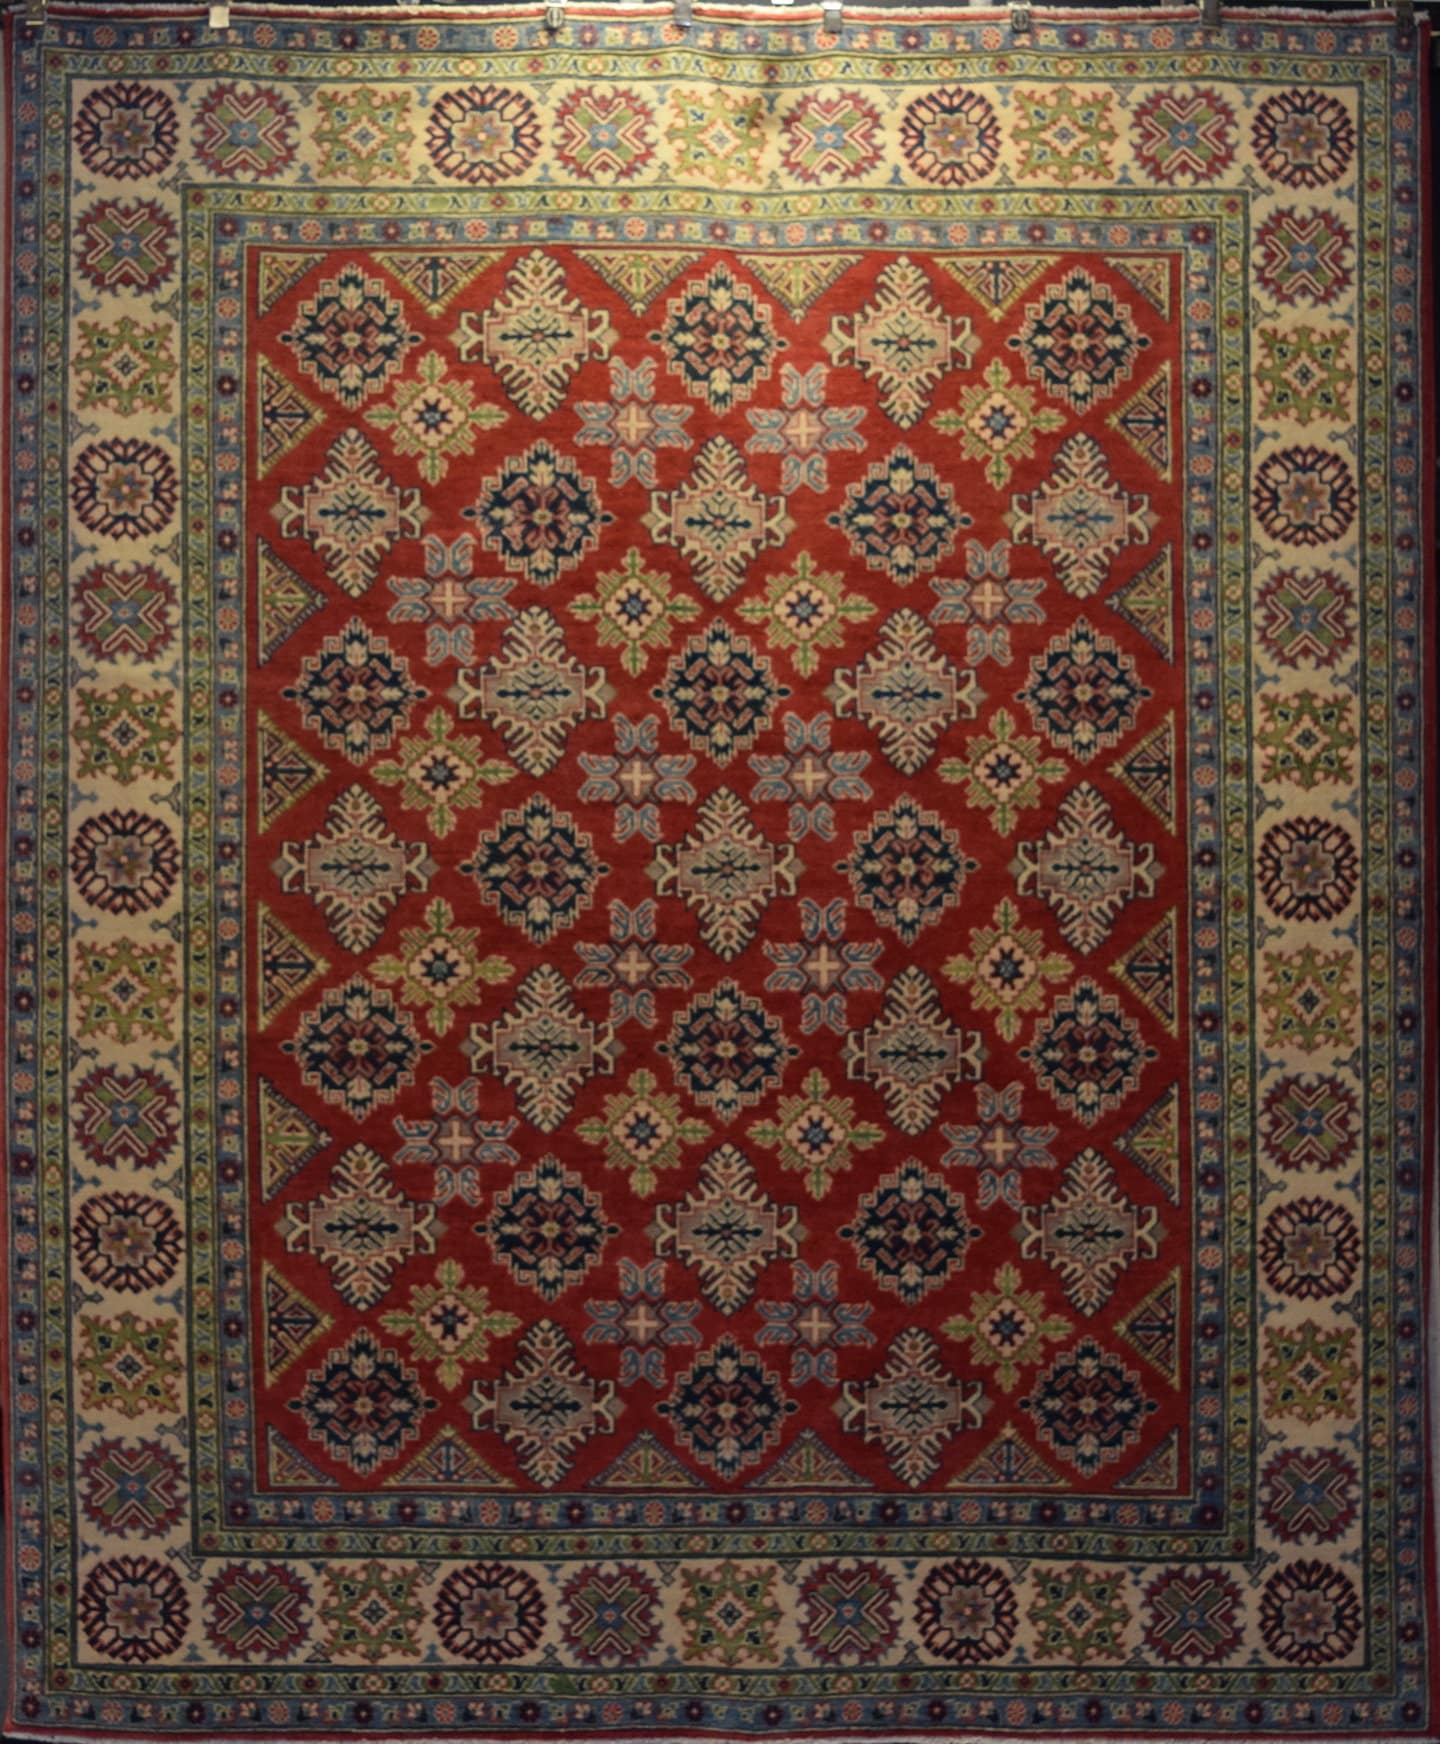 Beautiful Hand Knotted One Of The Kind Oriental Rugs Kazak Turkman Size 8 2 X 9 11 Ft